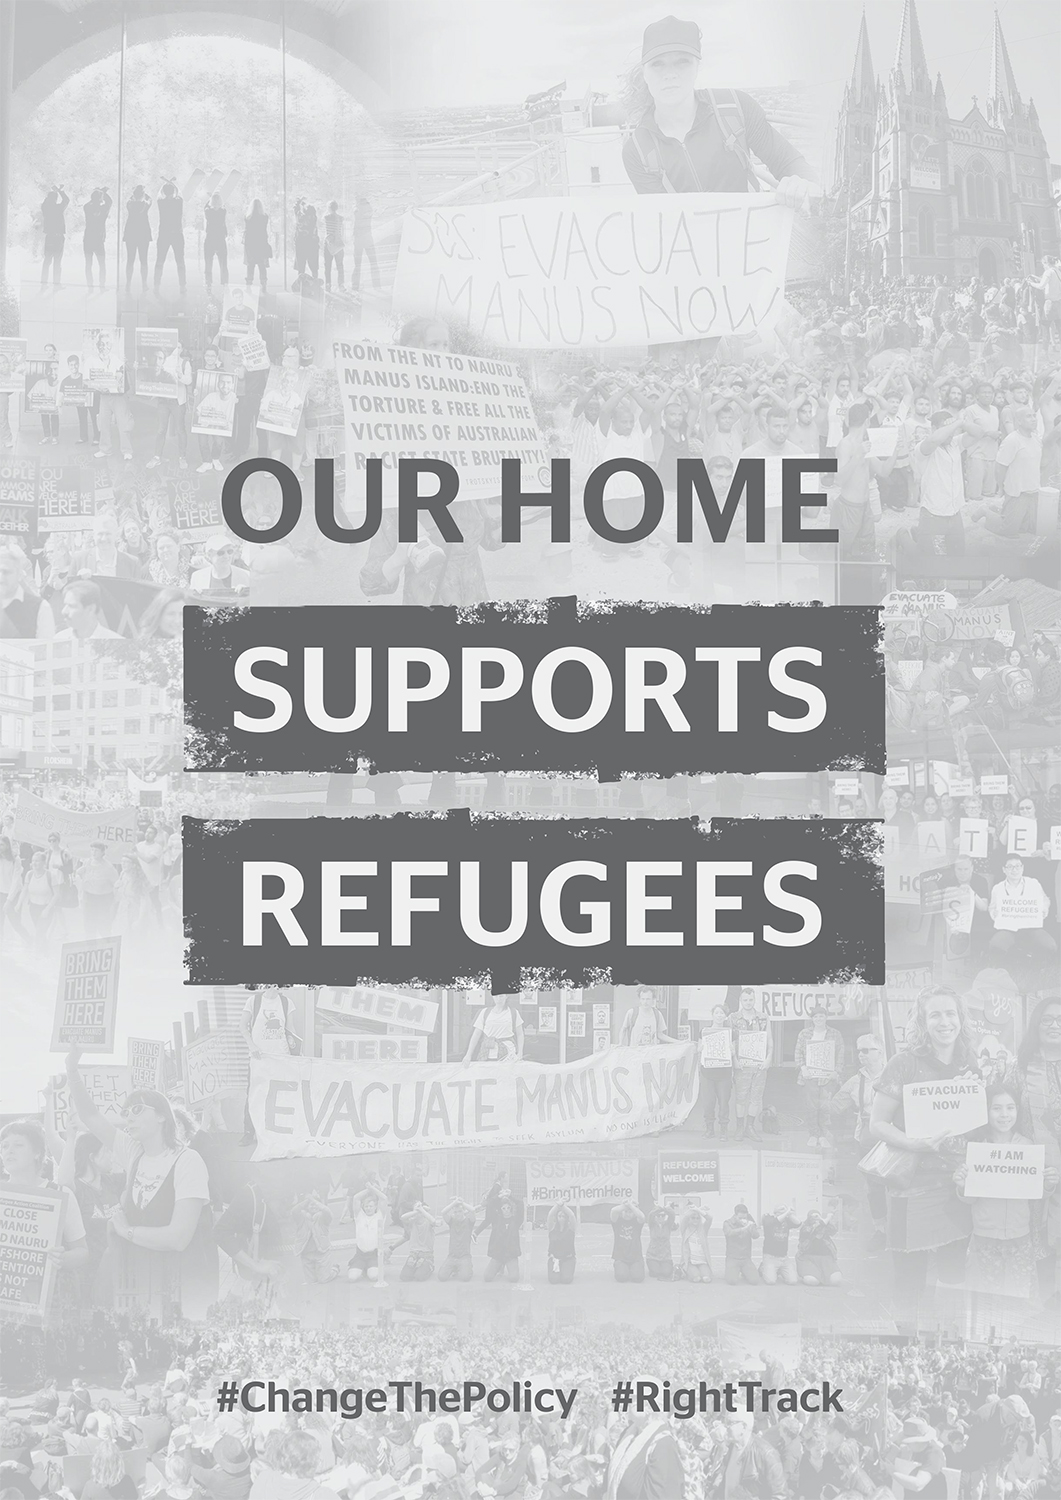 Our_Home_Supports_Refugees_-_Greyscale.jpg